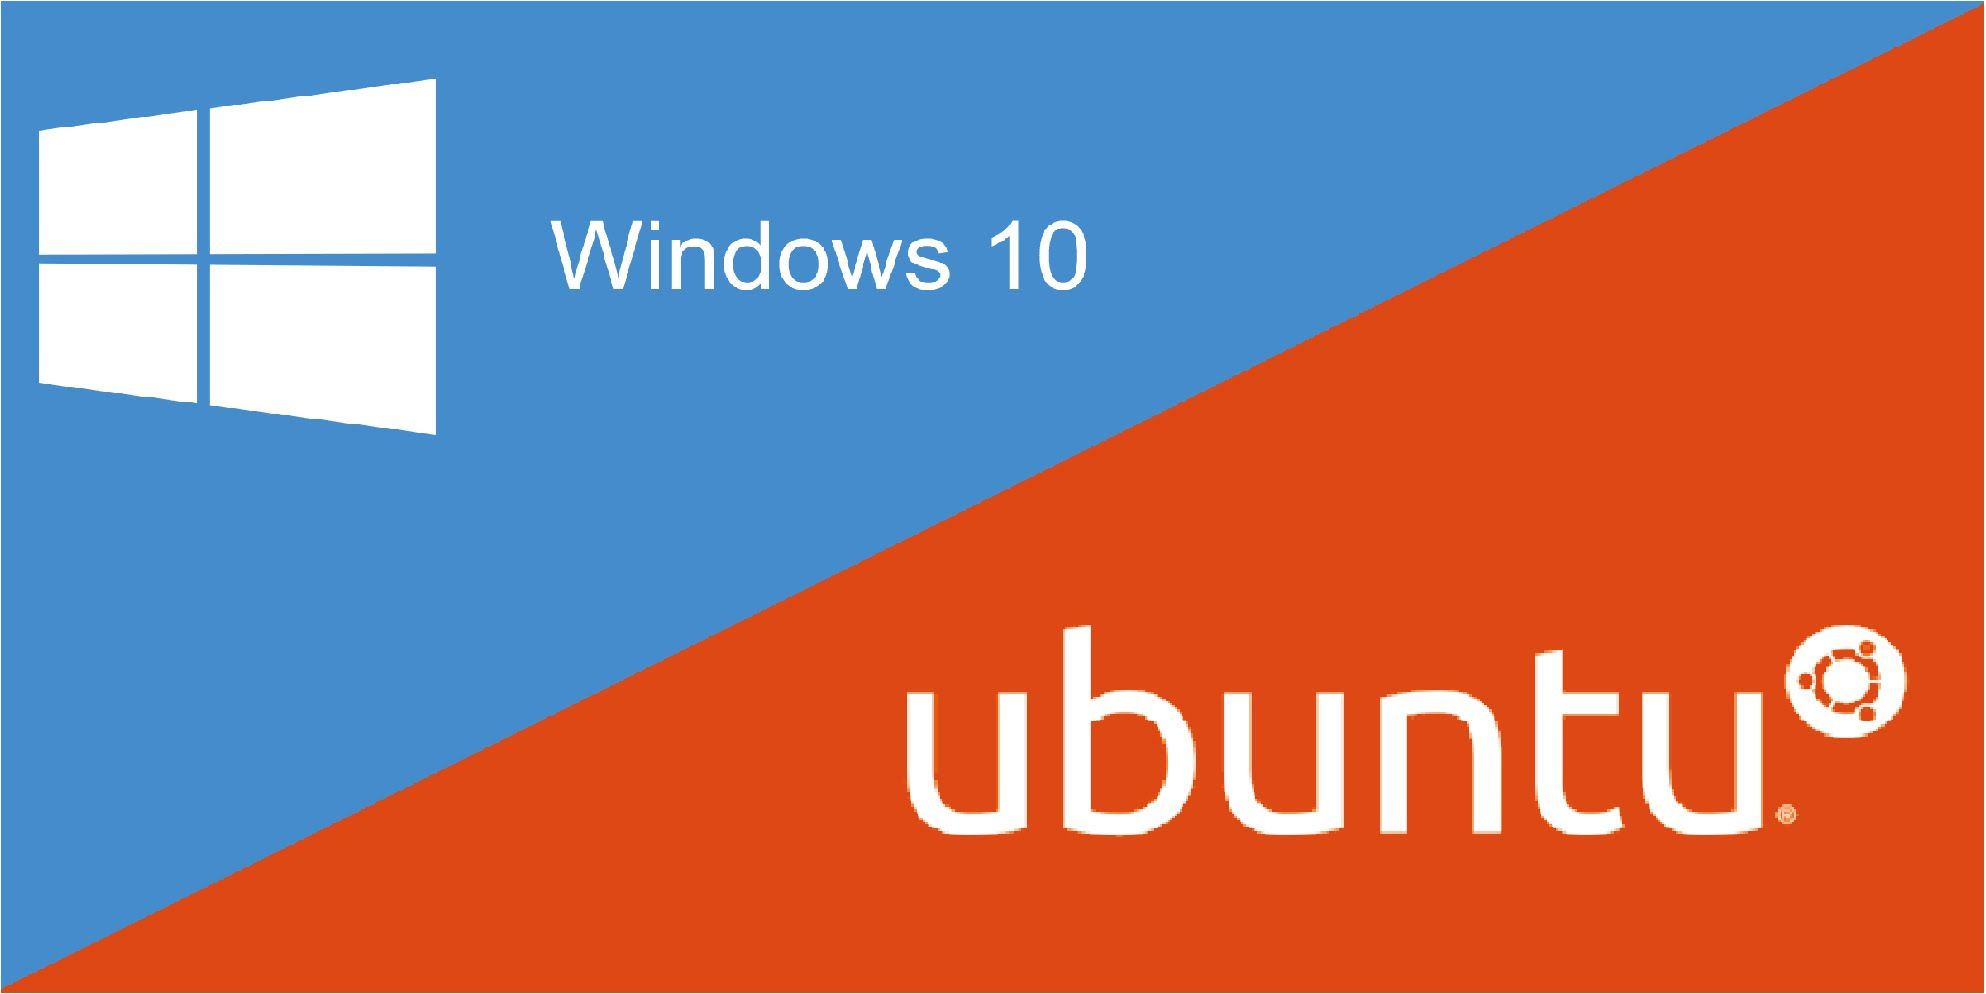 Ubuntu is now available for windows 10 on the windows store stopboris Images